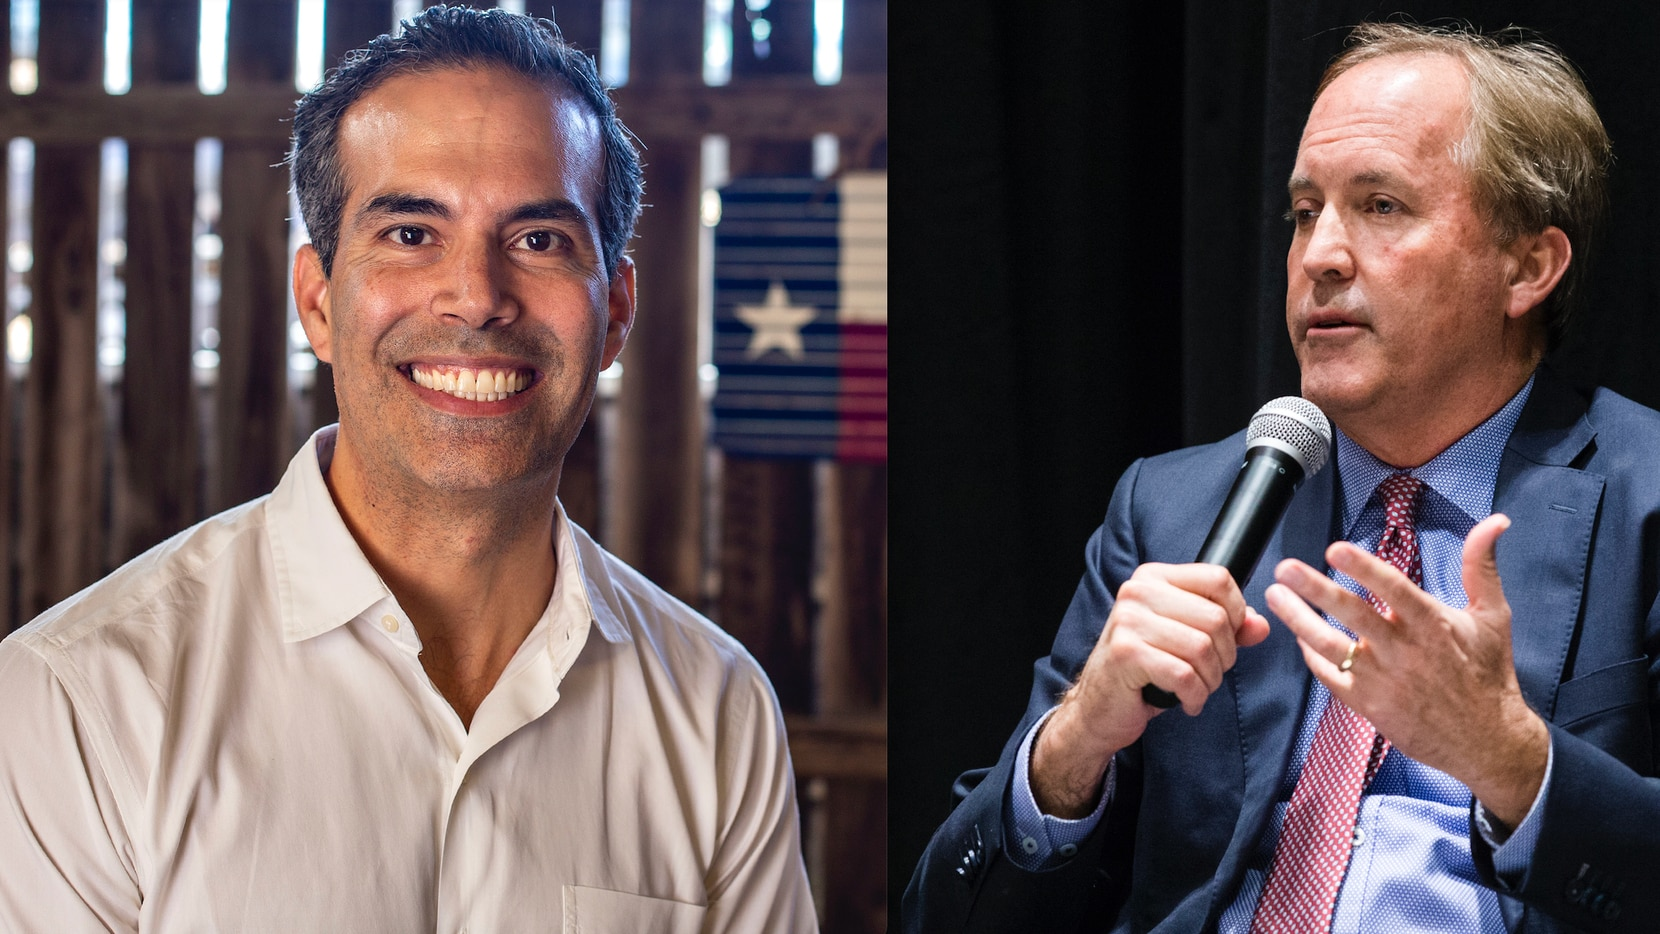 Texas Land Commissioner George P. Bush, left, is mulling a challenge against Attorney General Ken Paxton, right. Both are Republicans. Bush pictured at Velentina's Tex Mex on November 25, 2019 in Austin, Texas (credit: Thao Nguyen/Special Contributor). Paxton pictured at an event at The Dallas Morning News on on Wednesday, February 26, 2020 (credit: Ashley Landis/The Dallas Morning News).